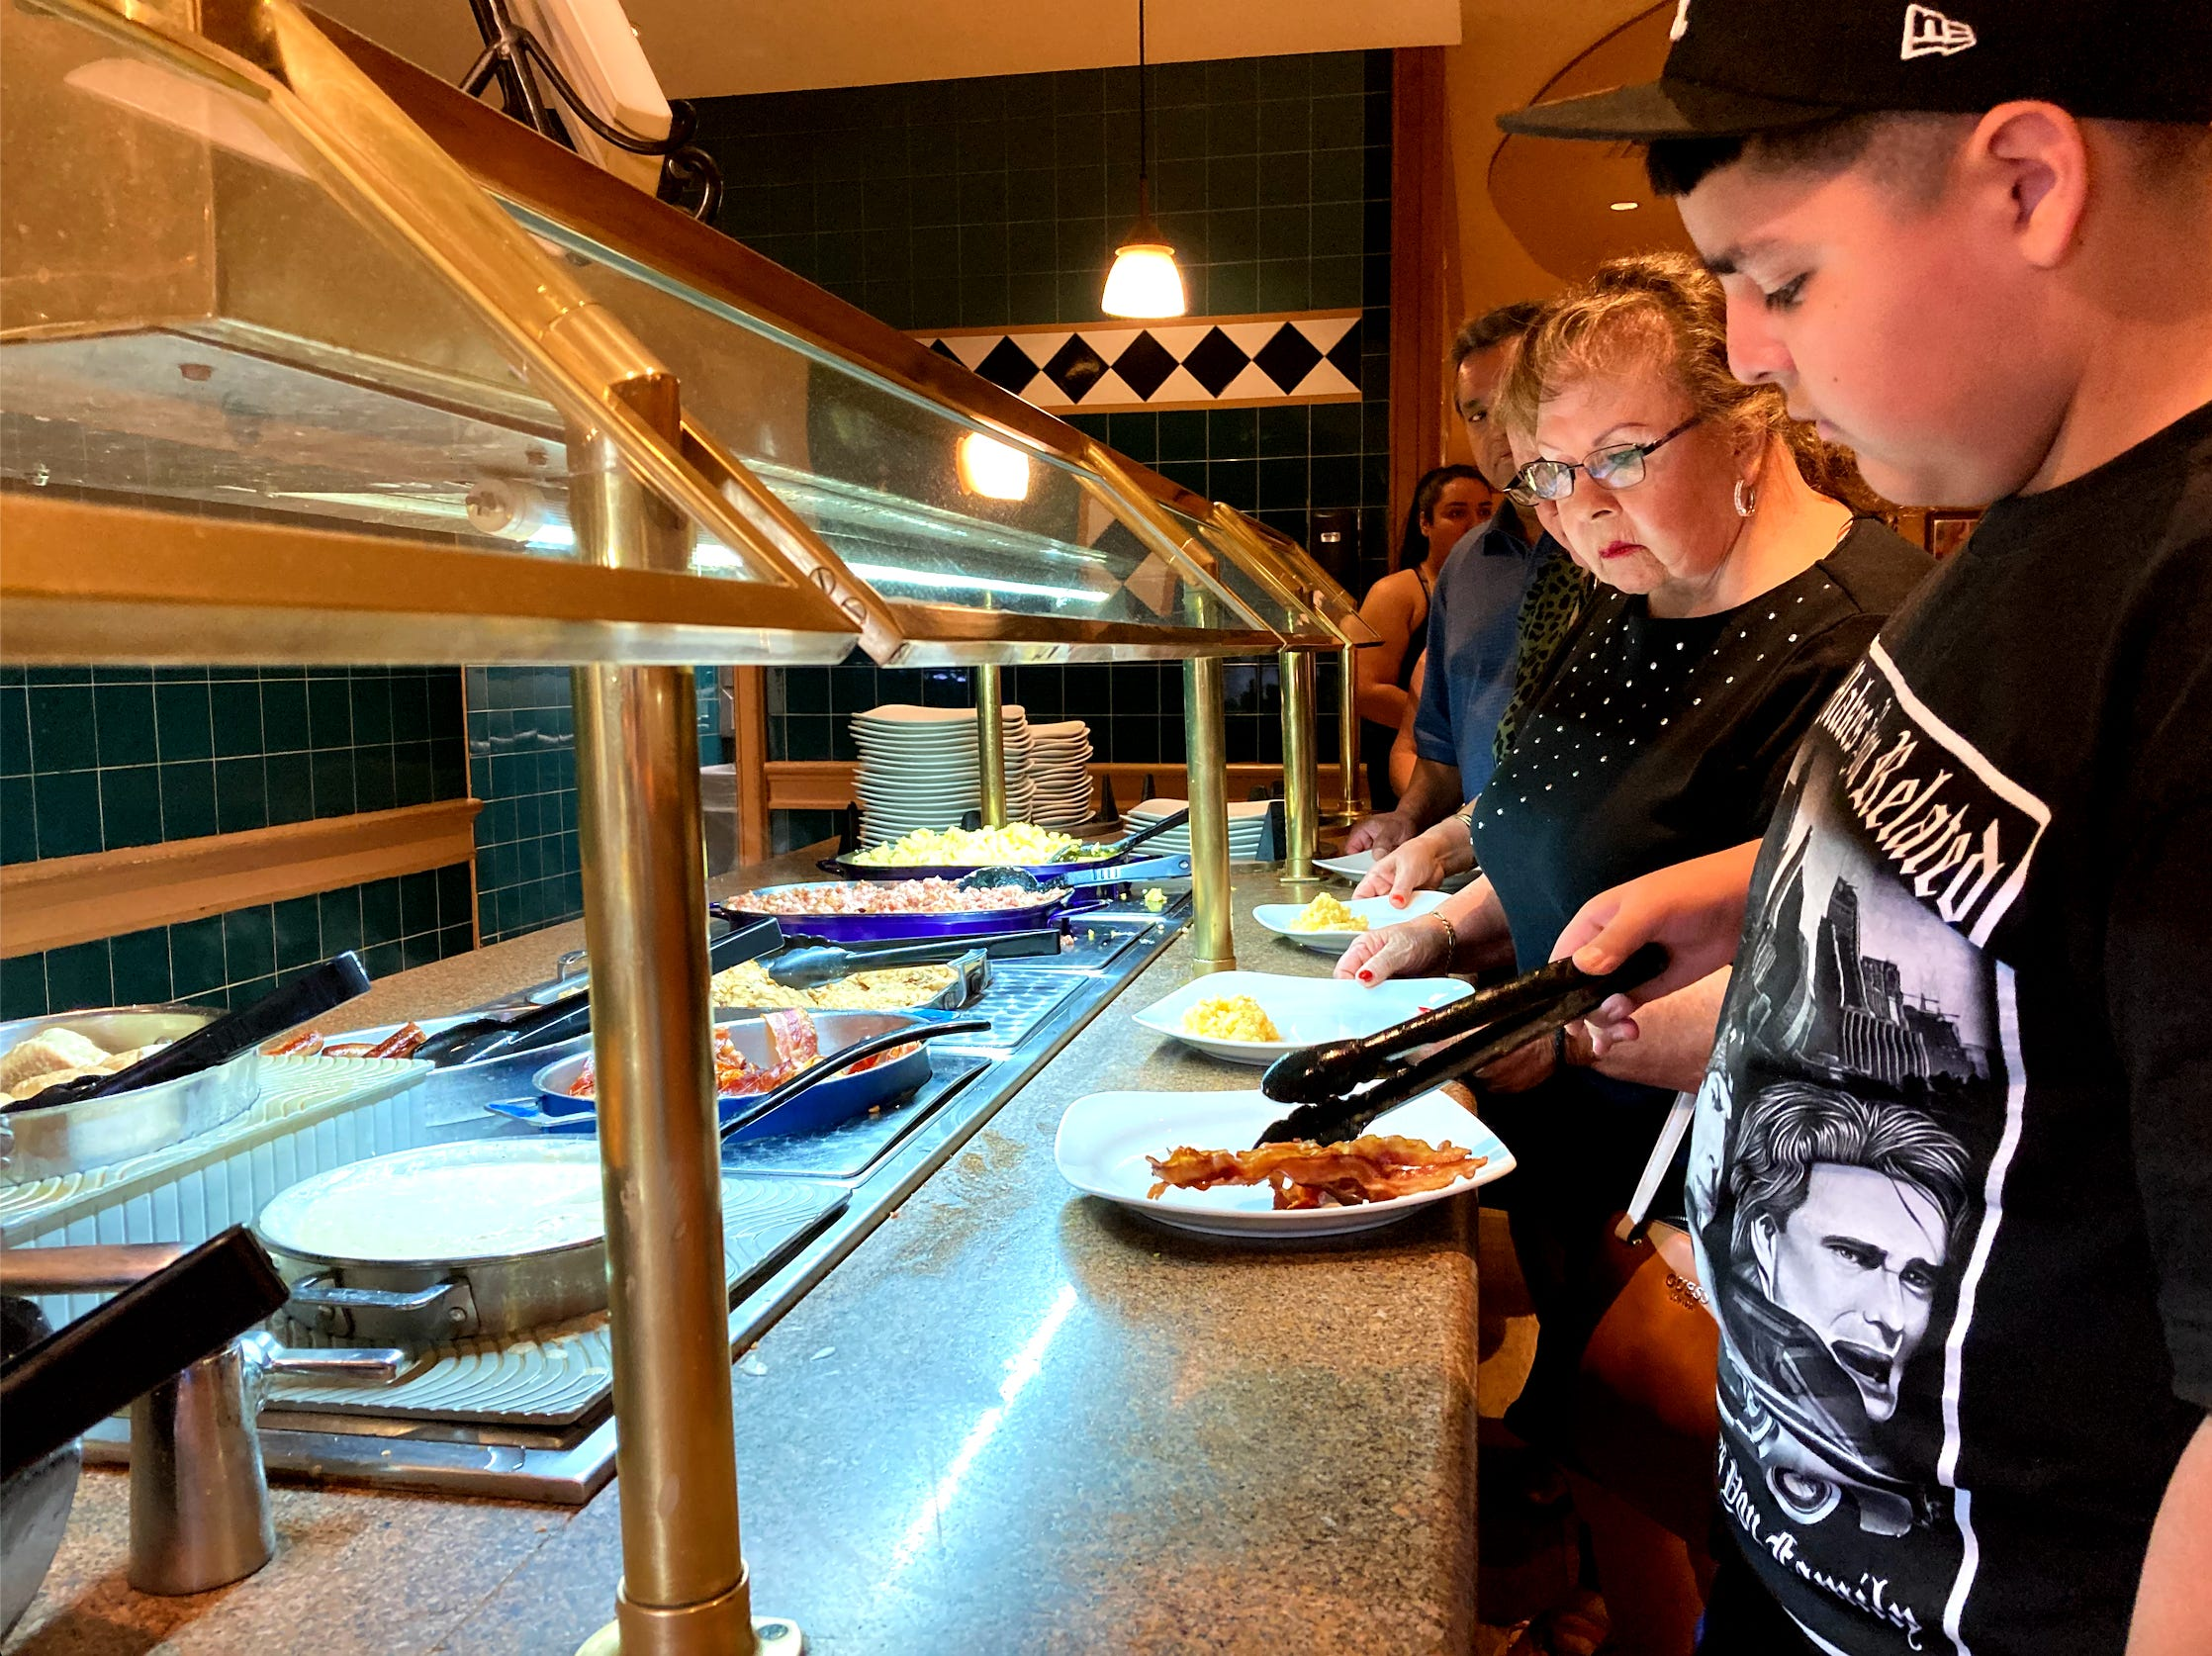 Las Vegas buffets are once again self-serve. But the 'buffet capital' isn't back to normal yet